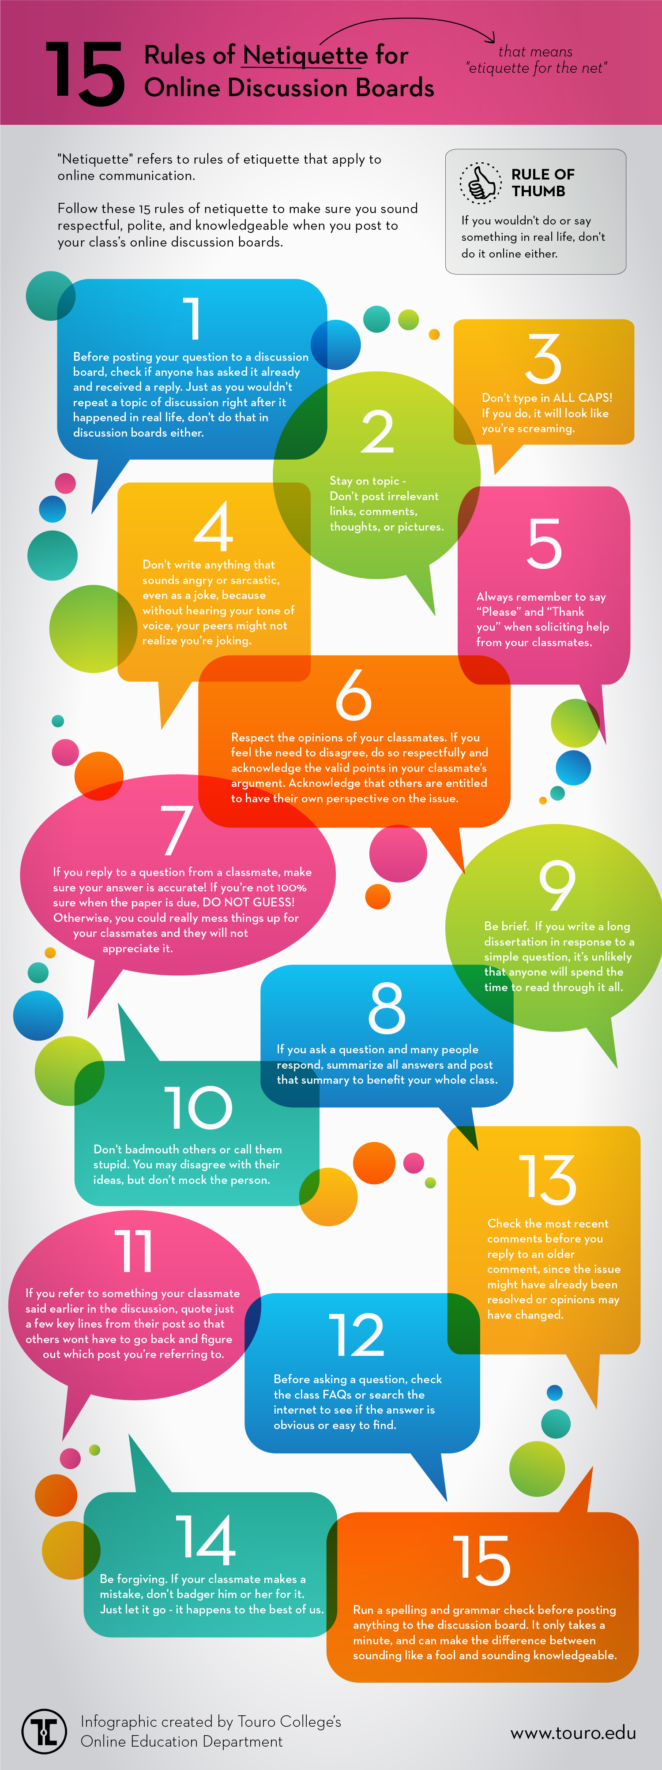 15 Rules of Online Netiquette Infographic